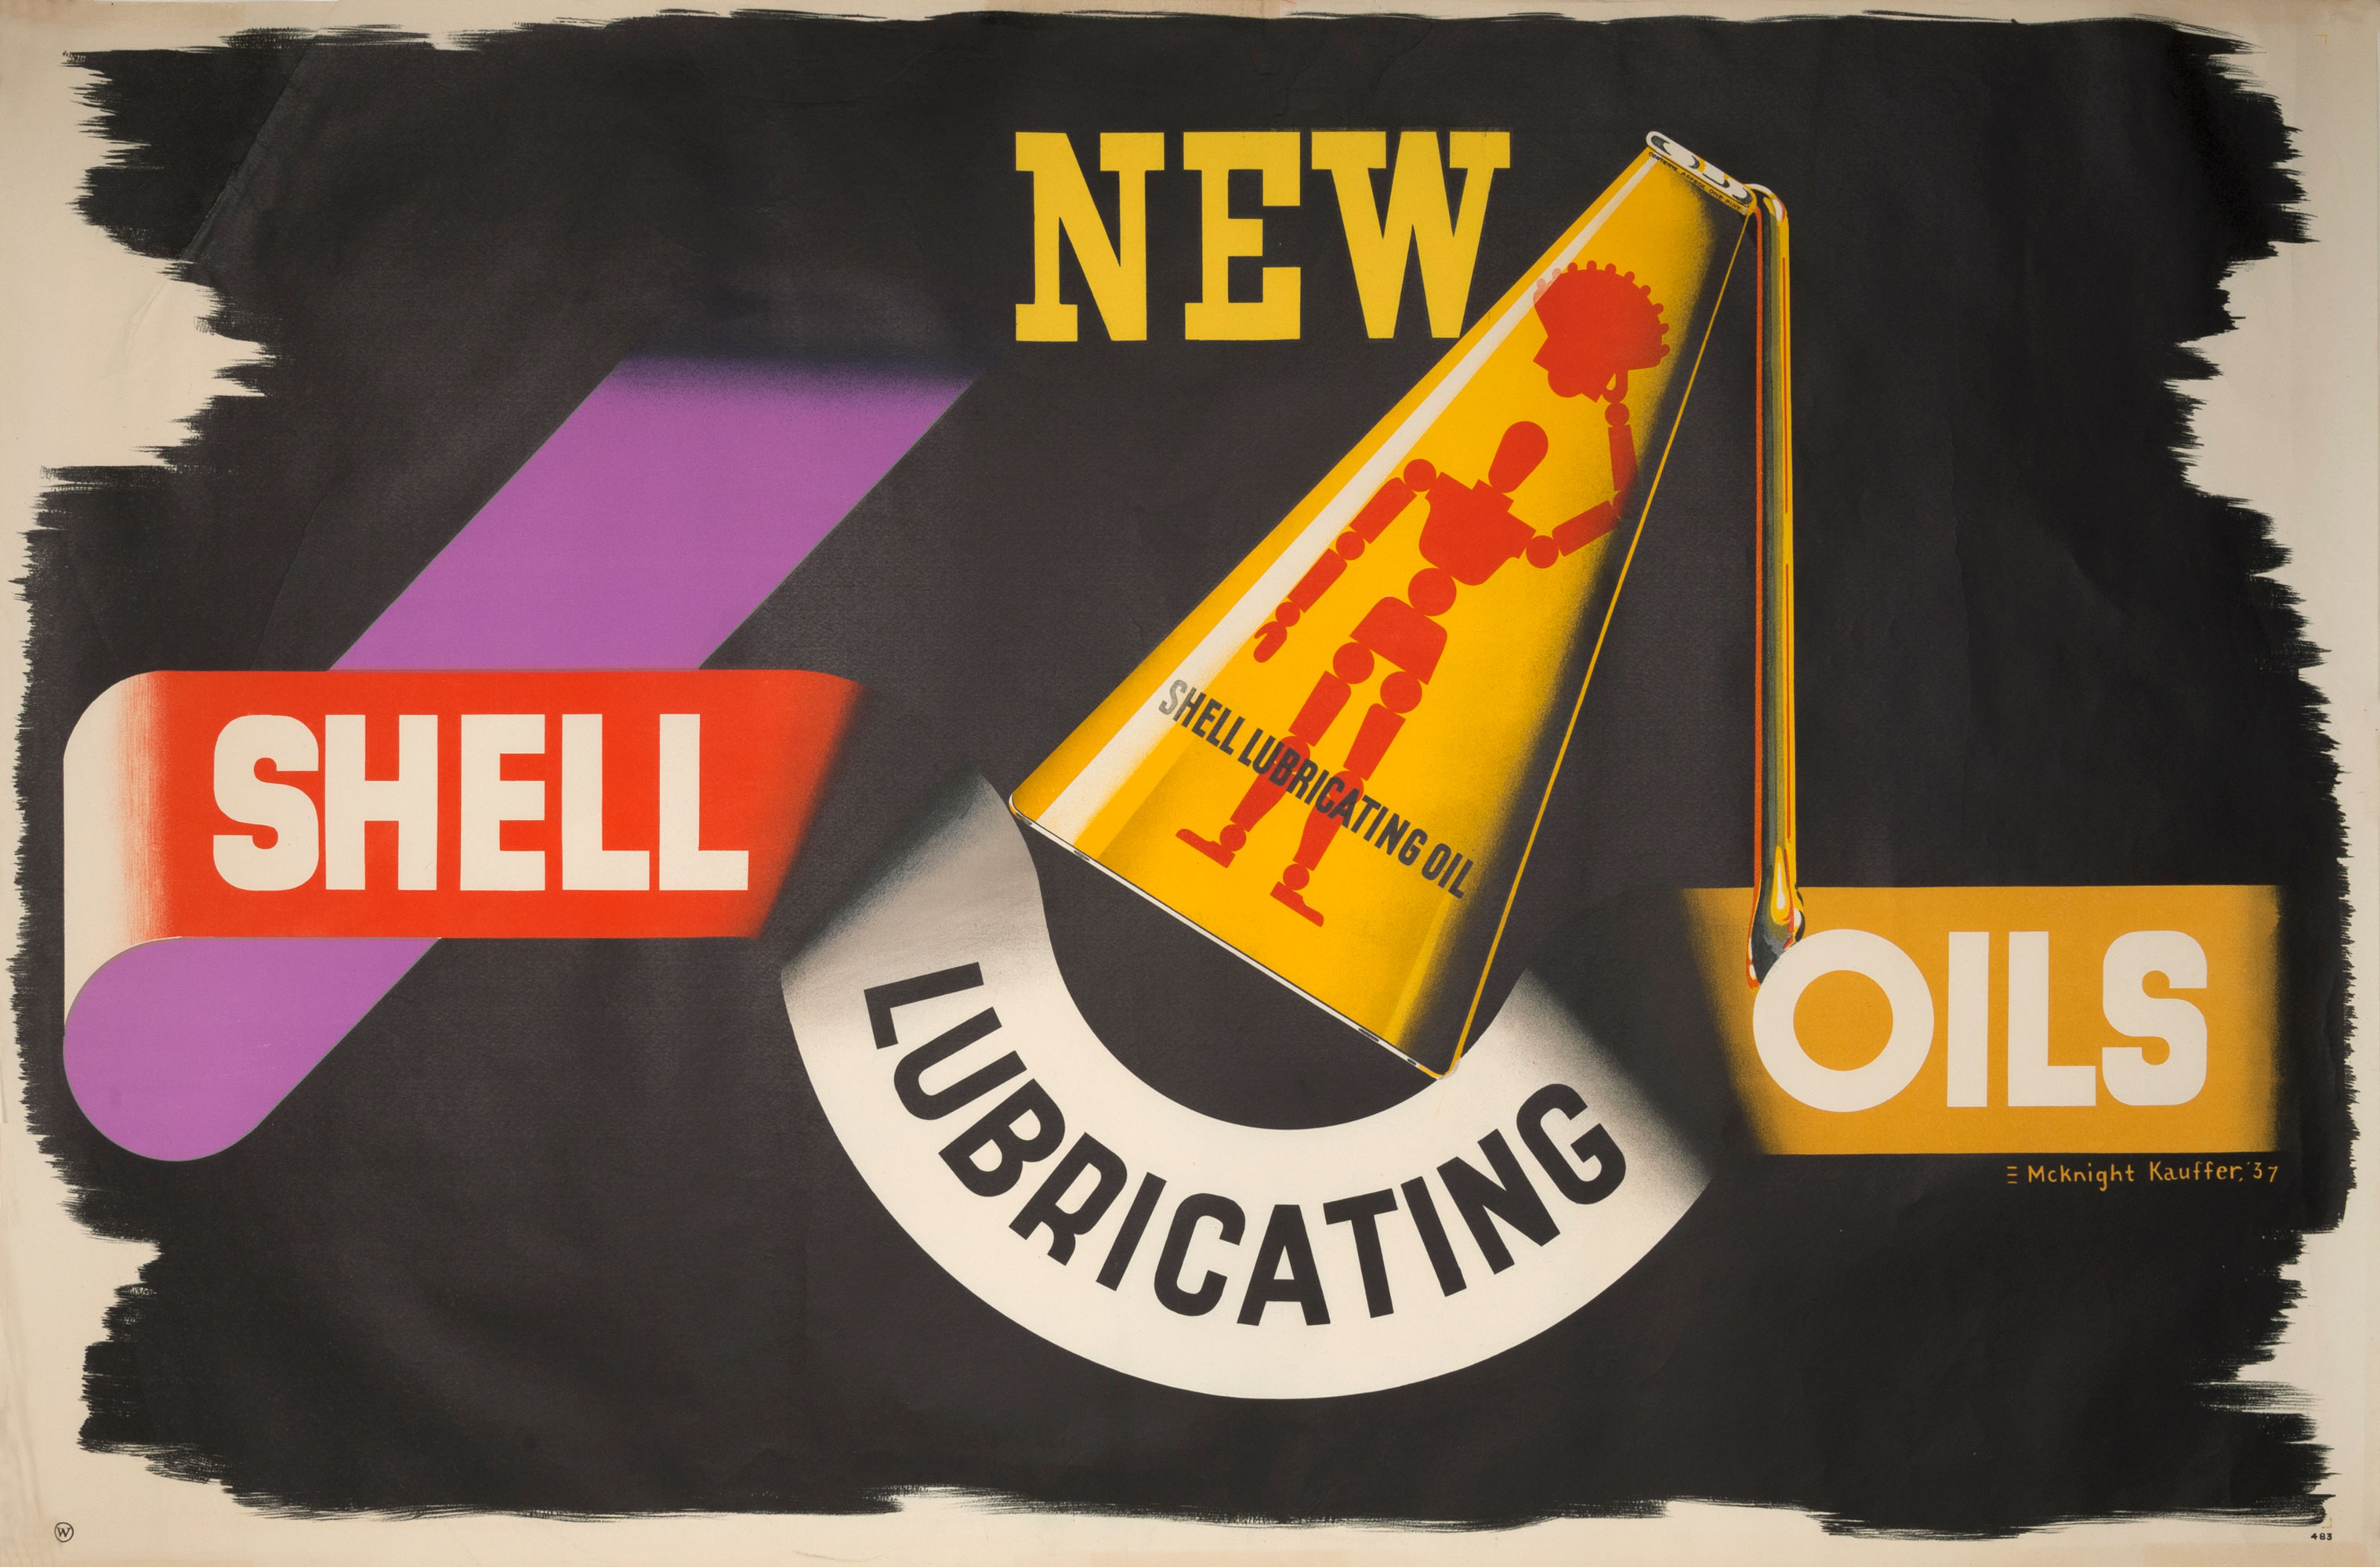 Shell poster number 483, New Shell lubricating oils by Edward McKnight Kauffer. Painting shows an oil can decorated with a red figure holding a shell above it's head.